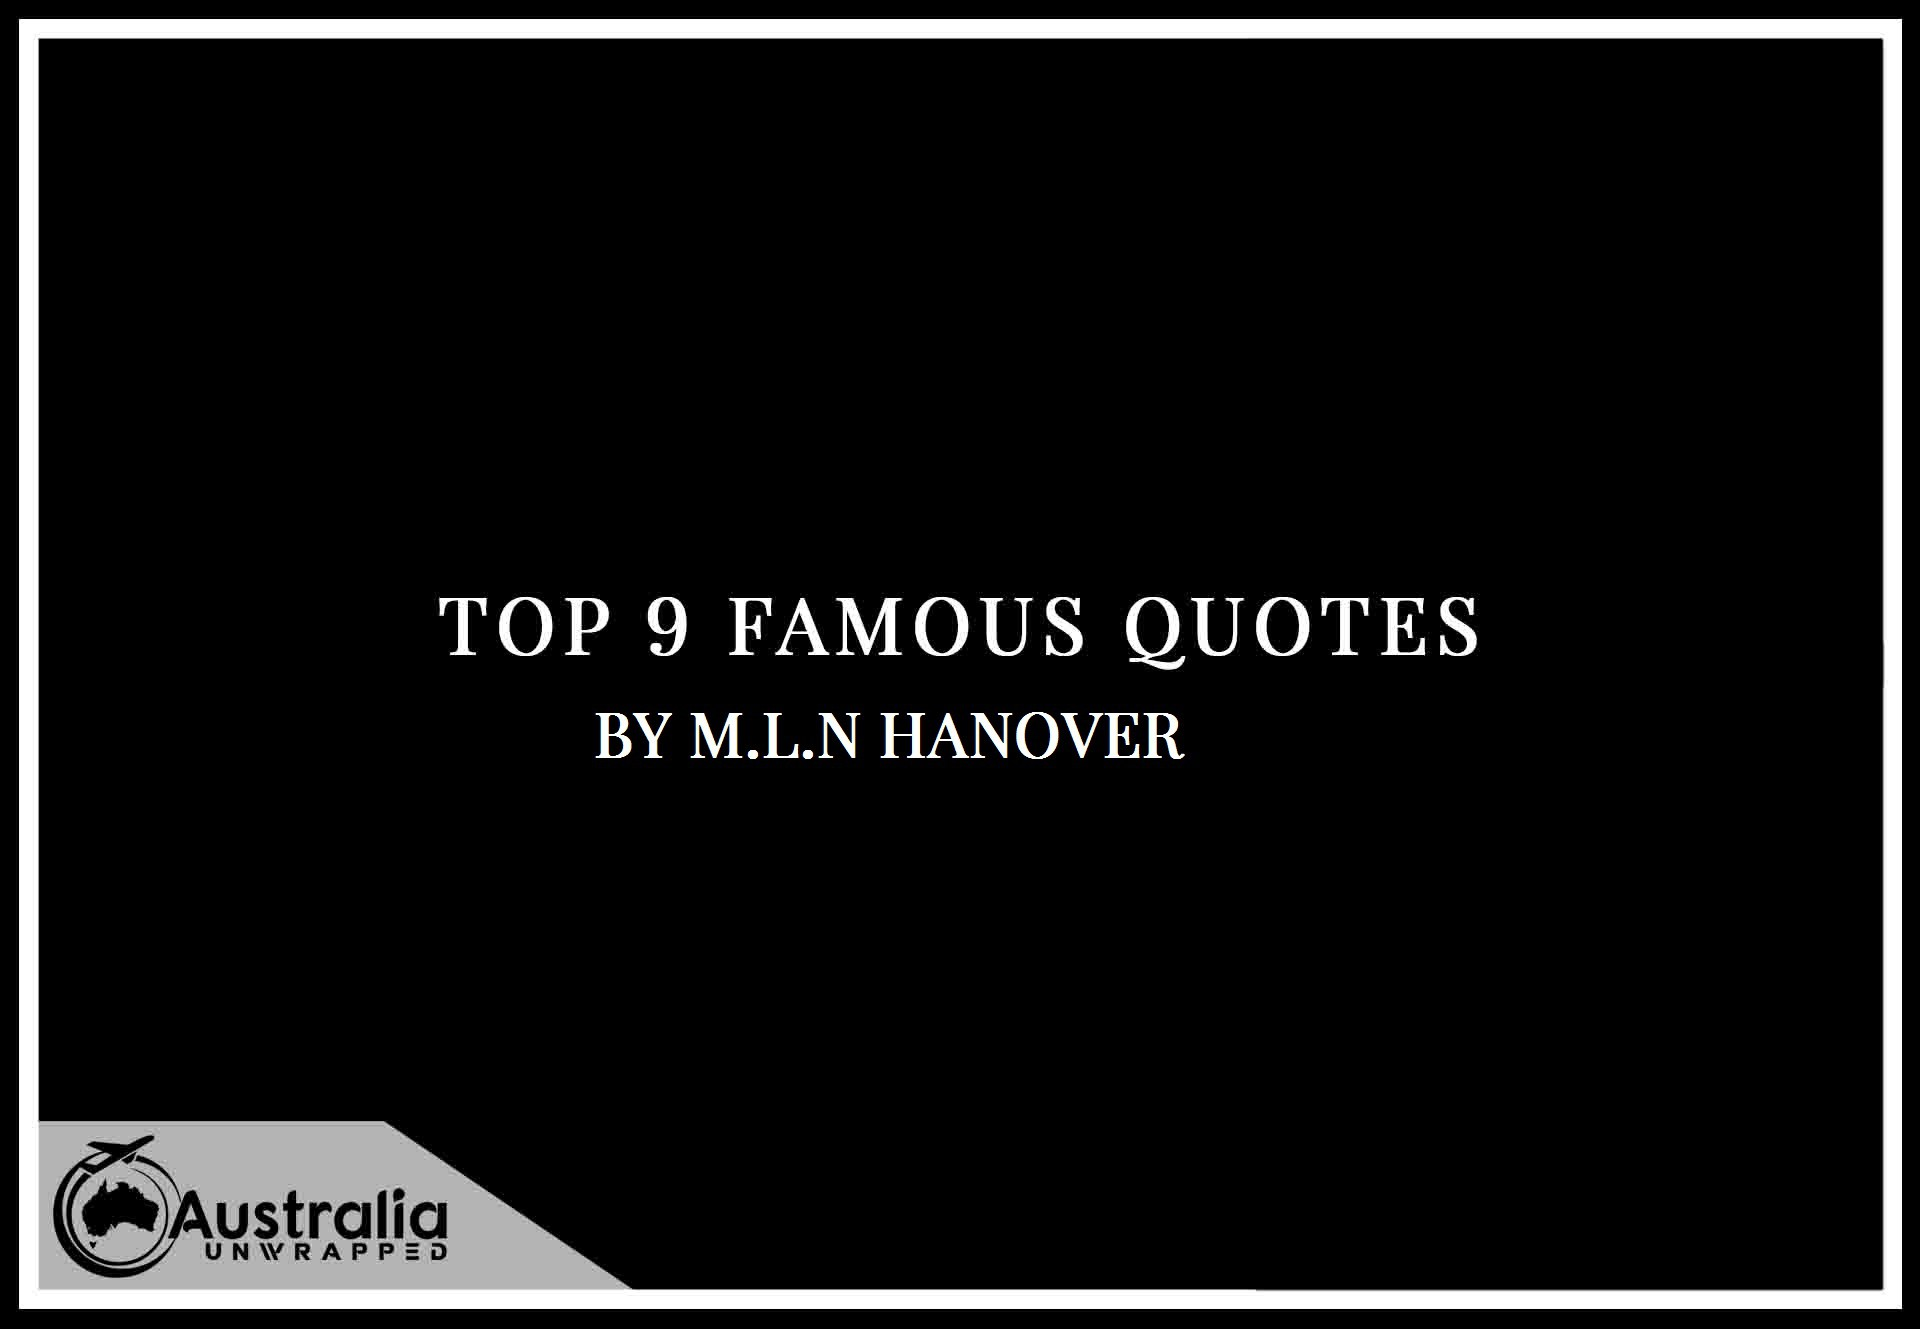 M.L.N. Hanover's Top 9 Popular and Famous Quotes